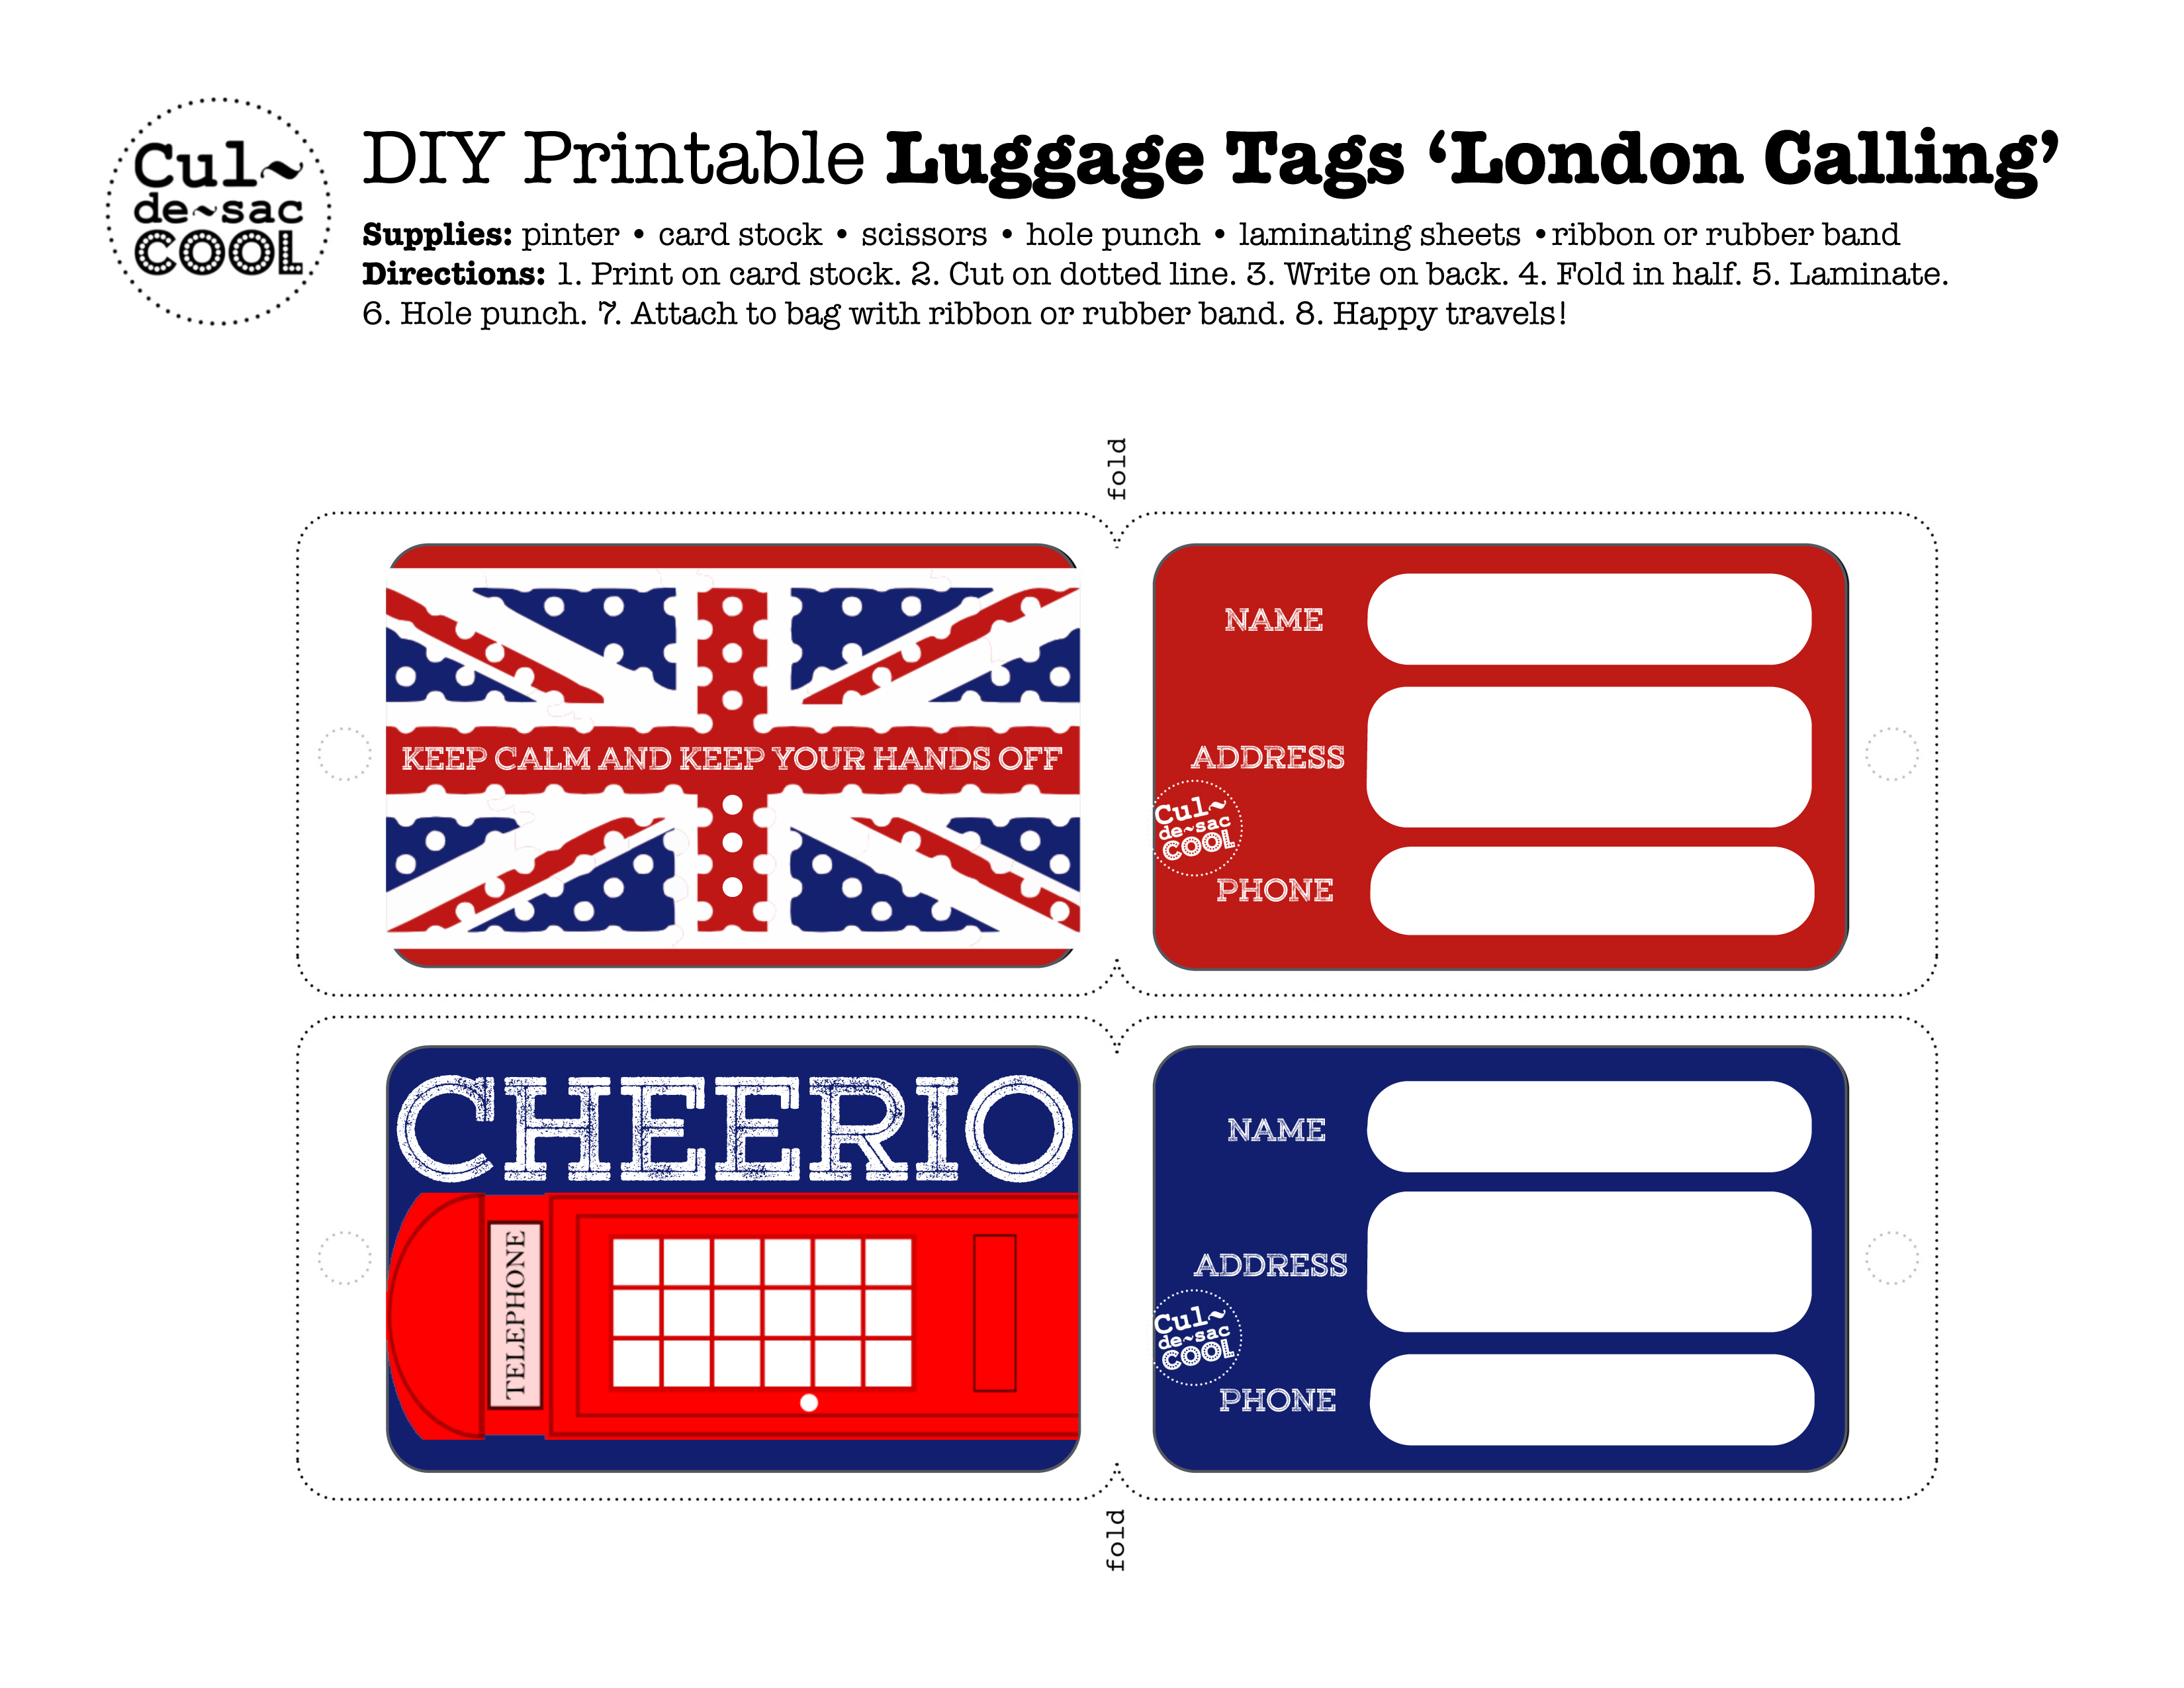 picture about Luggage Tags Printable identified as Do-it-yourself Printable Baggage Tags London Getting in touch with